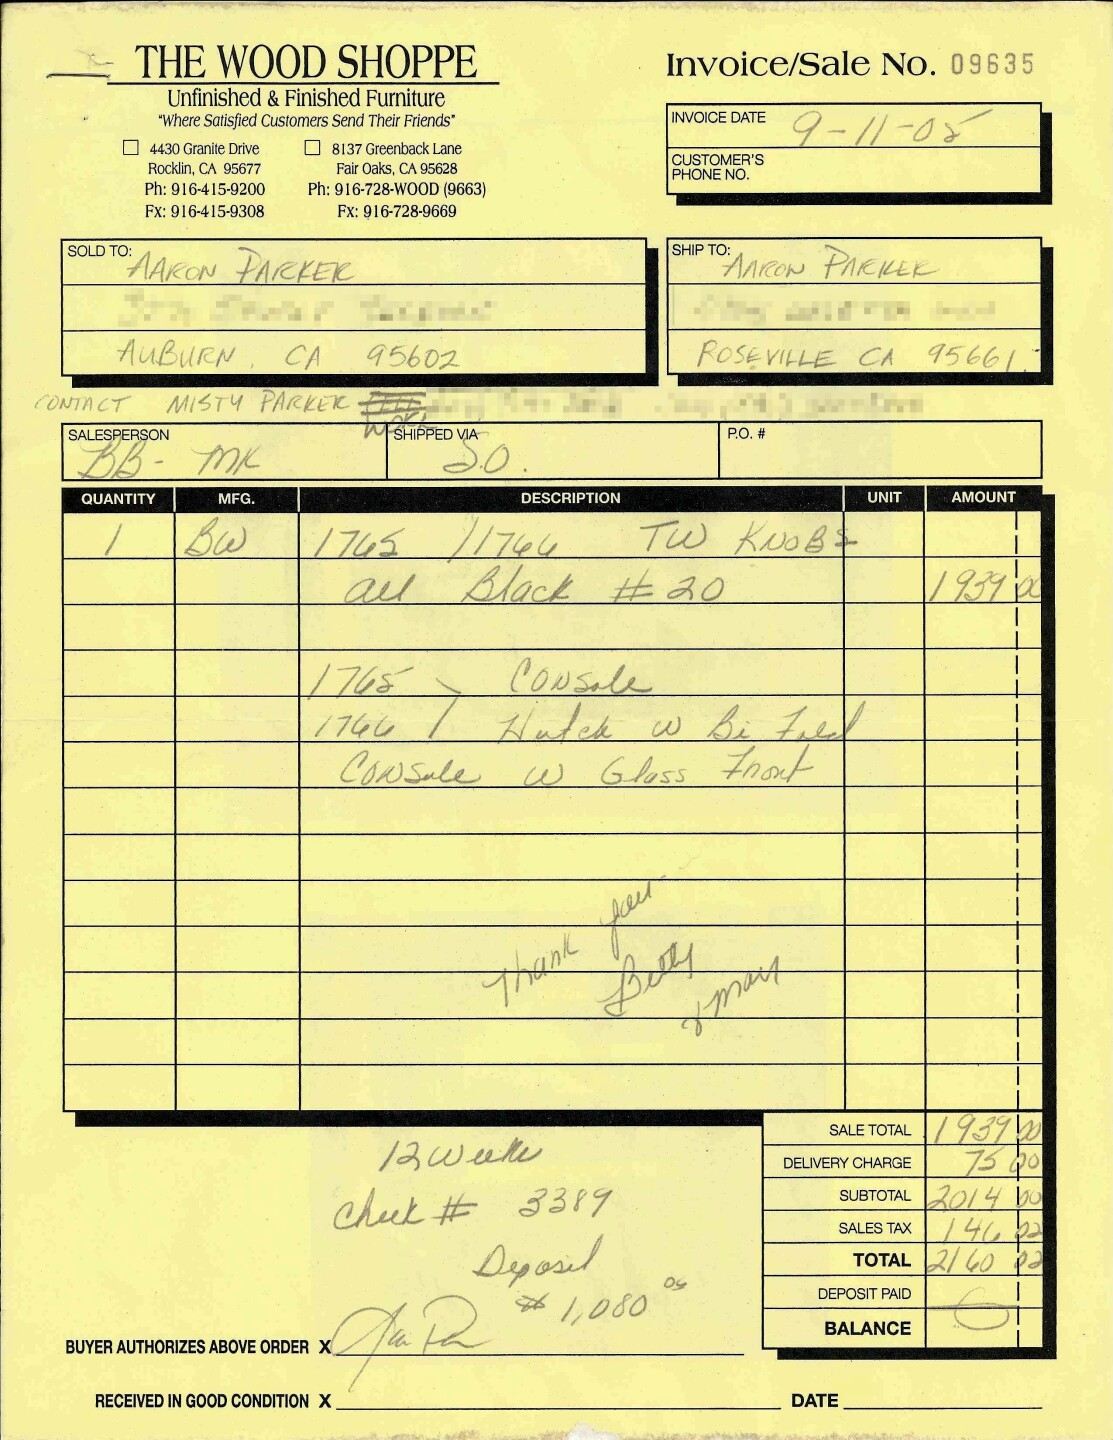 Parker's receipt from The Wood Shoppe in Sacramento area shows he put a $1,080 deposit down on a hutch and console.